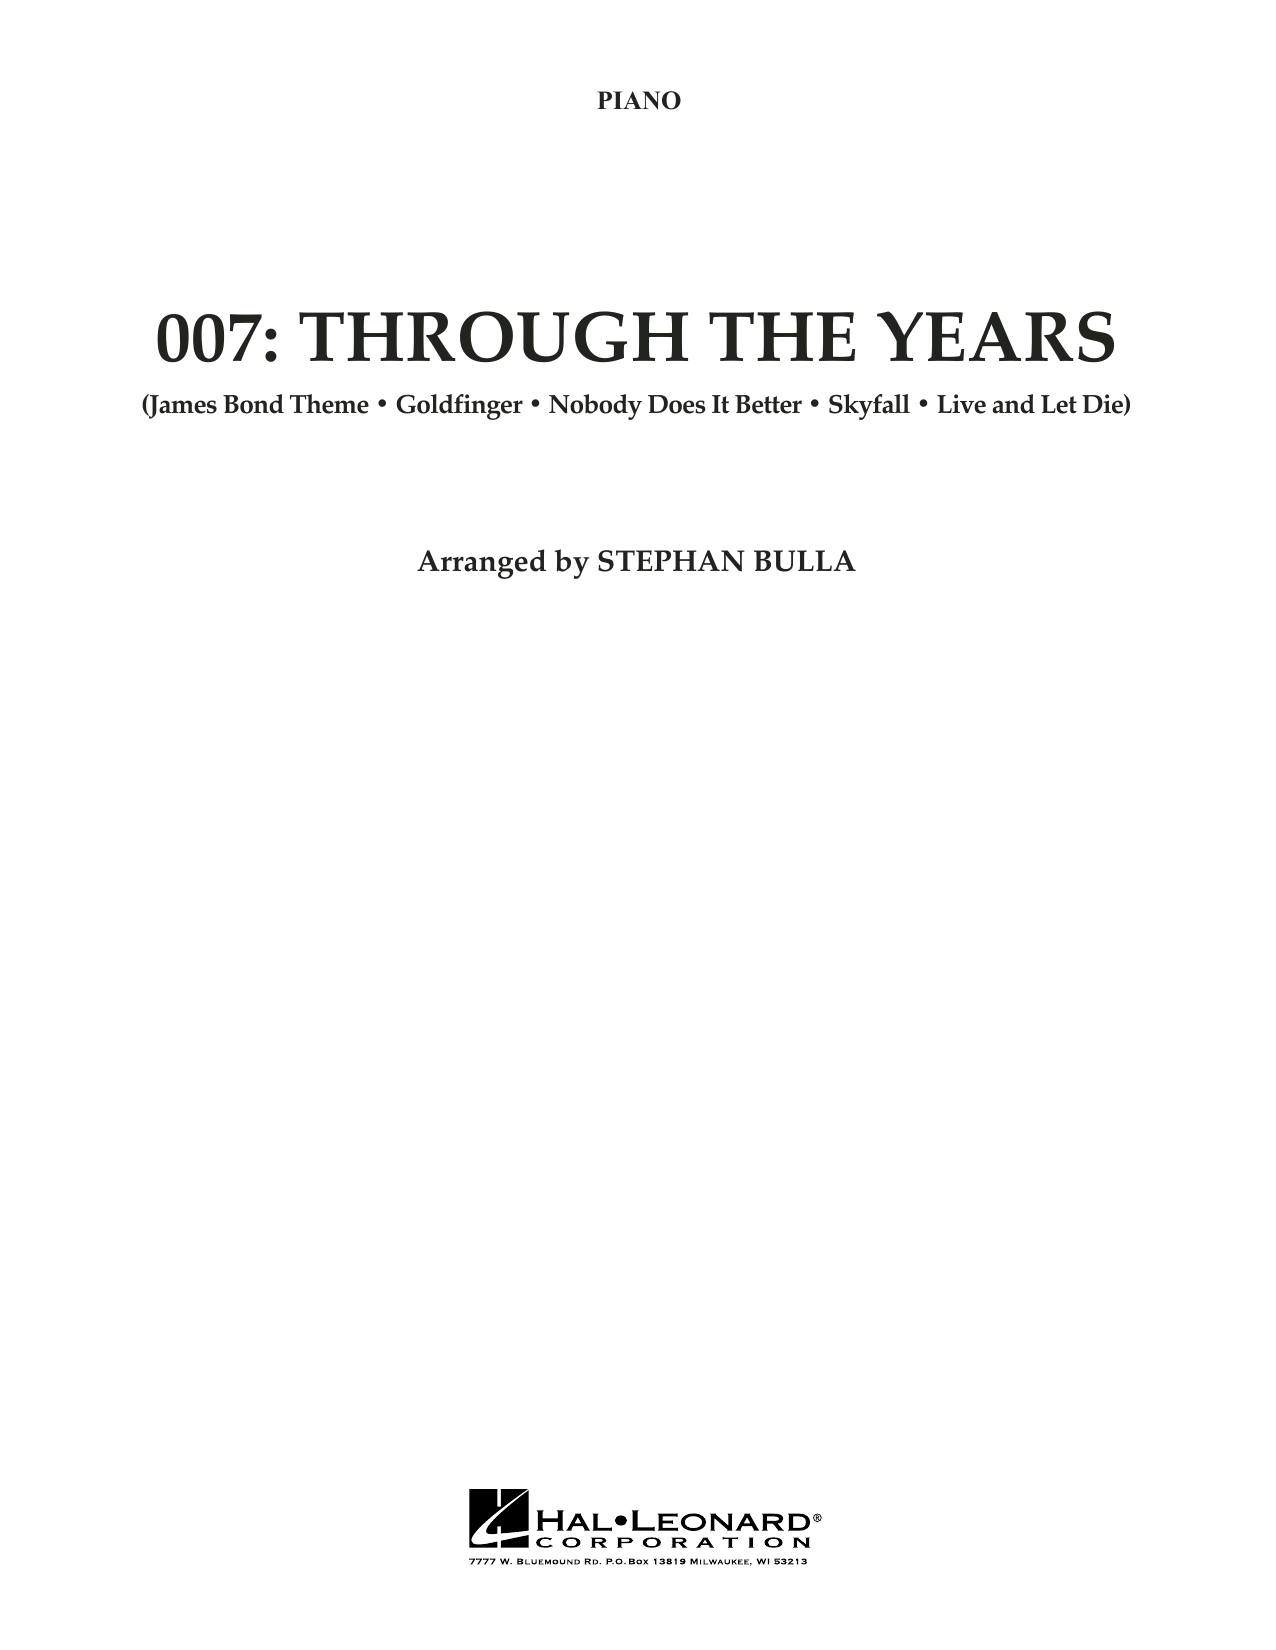 Stephen Bulla 007: Through The Years - Piano sheet music preview music notes and score for Orchestra including 7 page(s)